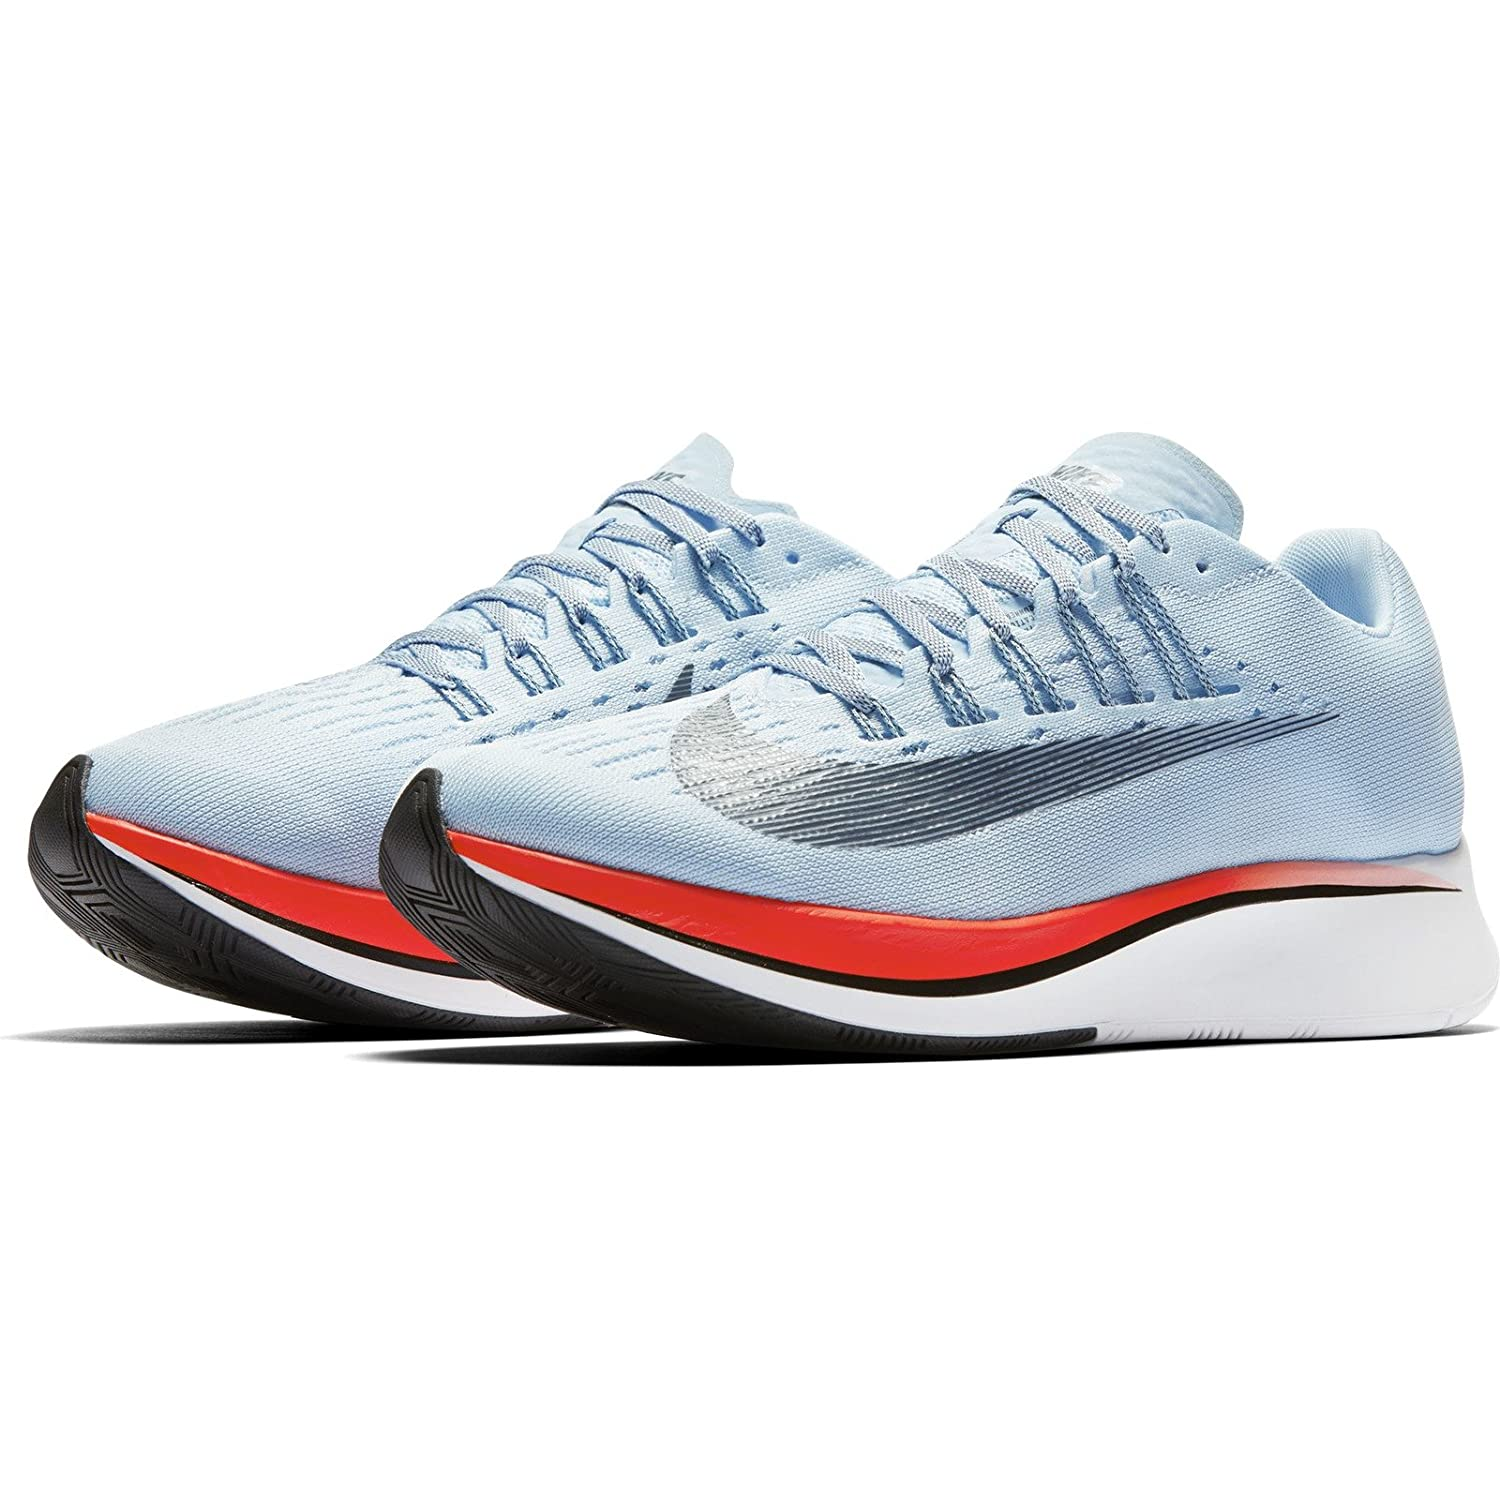 Nike Womens Zoom Fly Fabric Low Top Lace Up Running Sneaker, Blue, Size 8.0